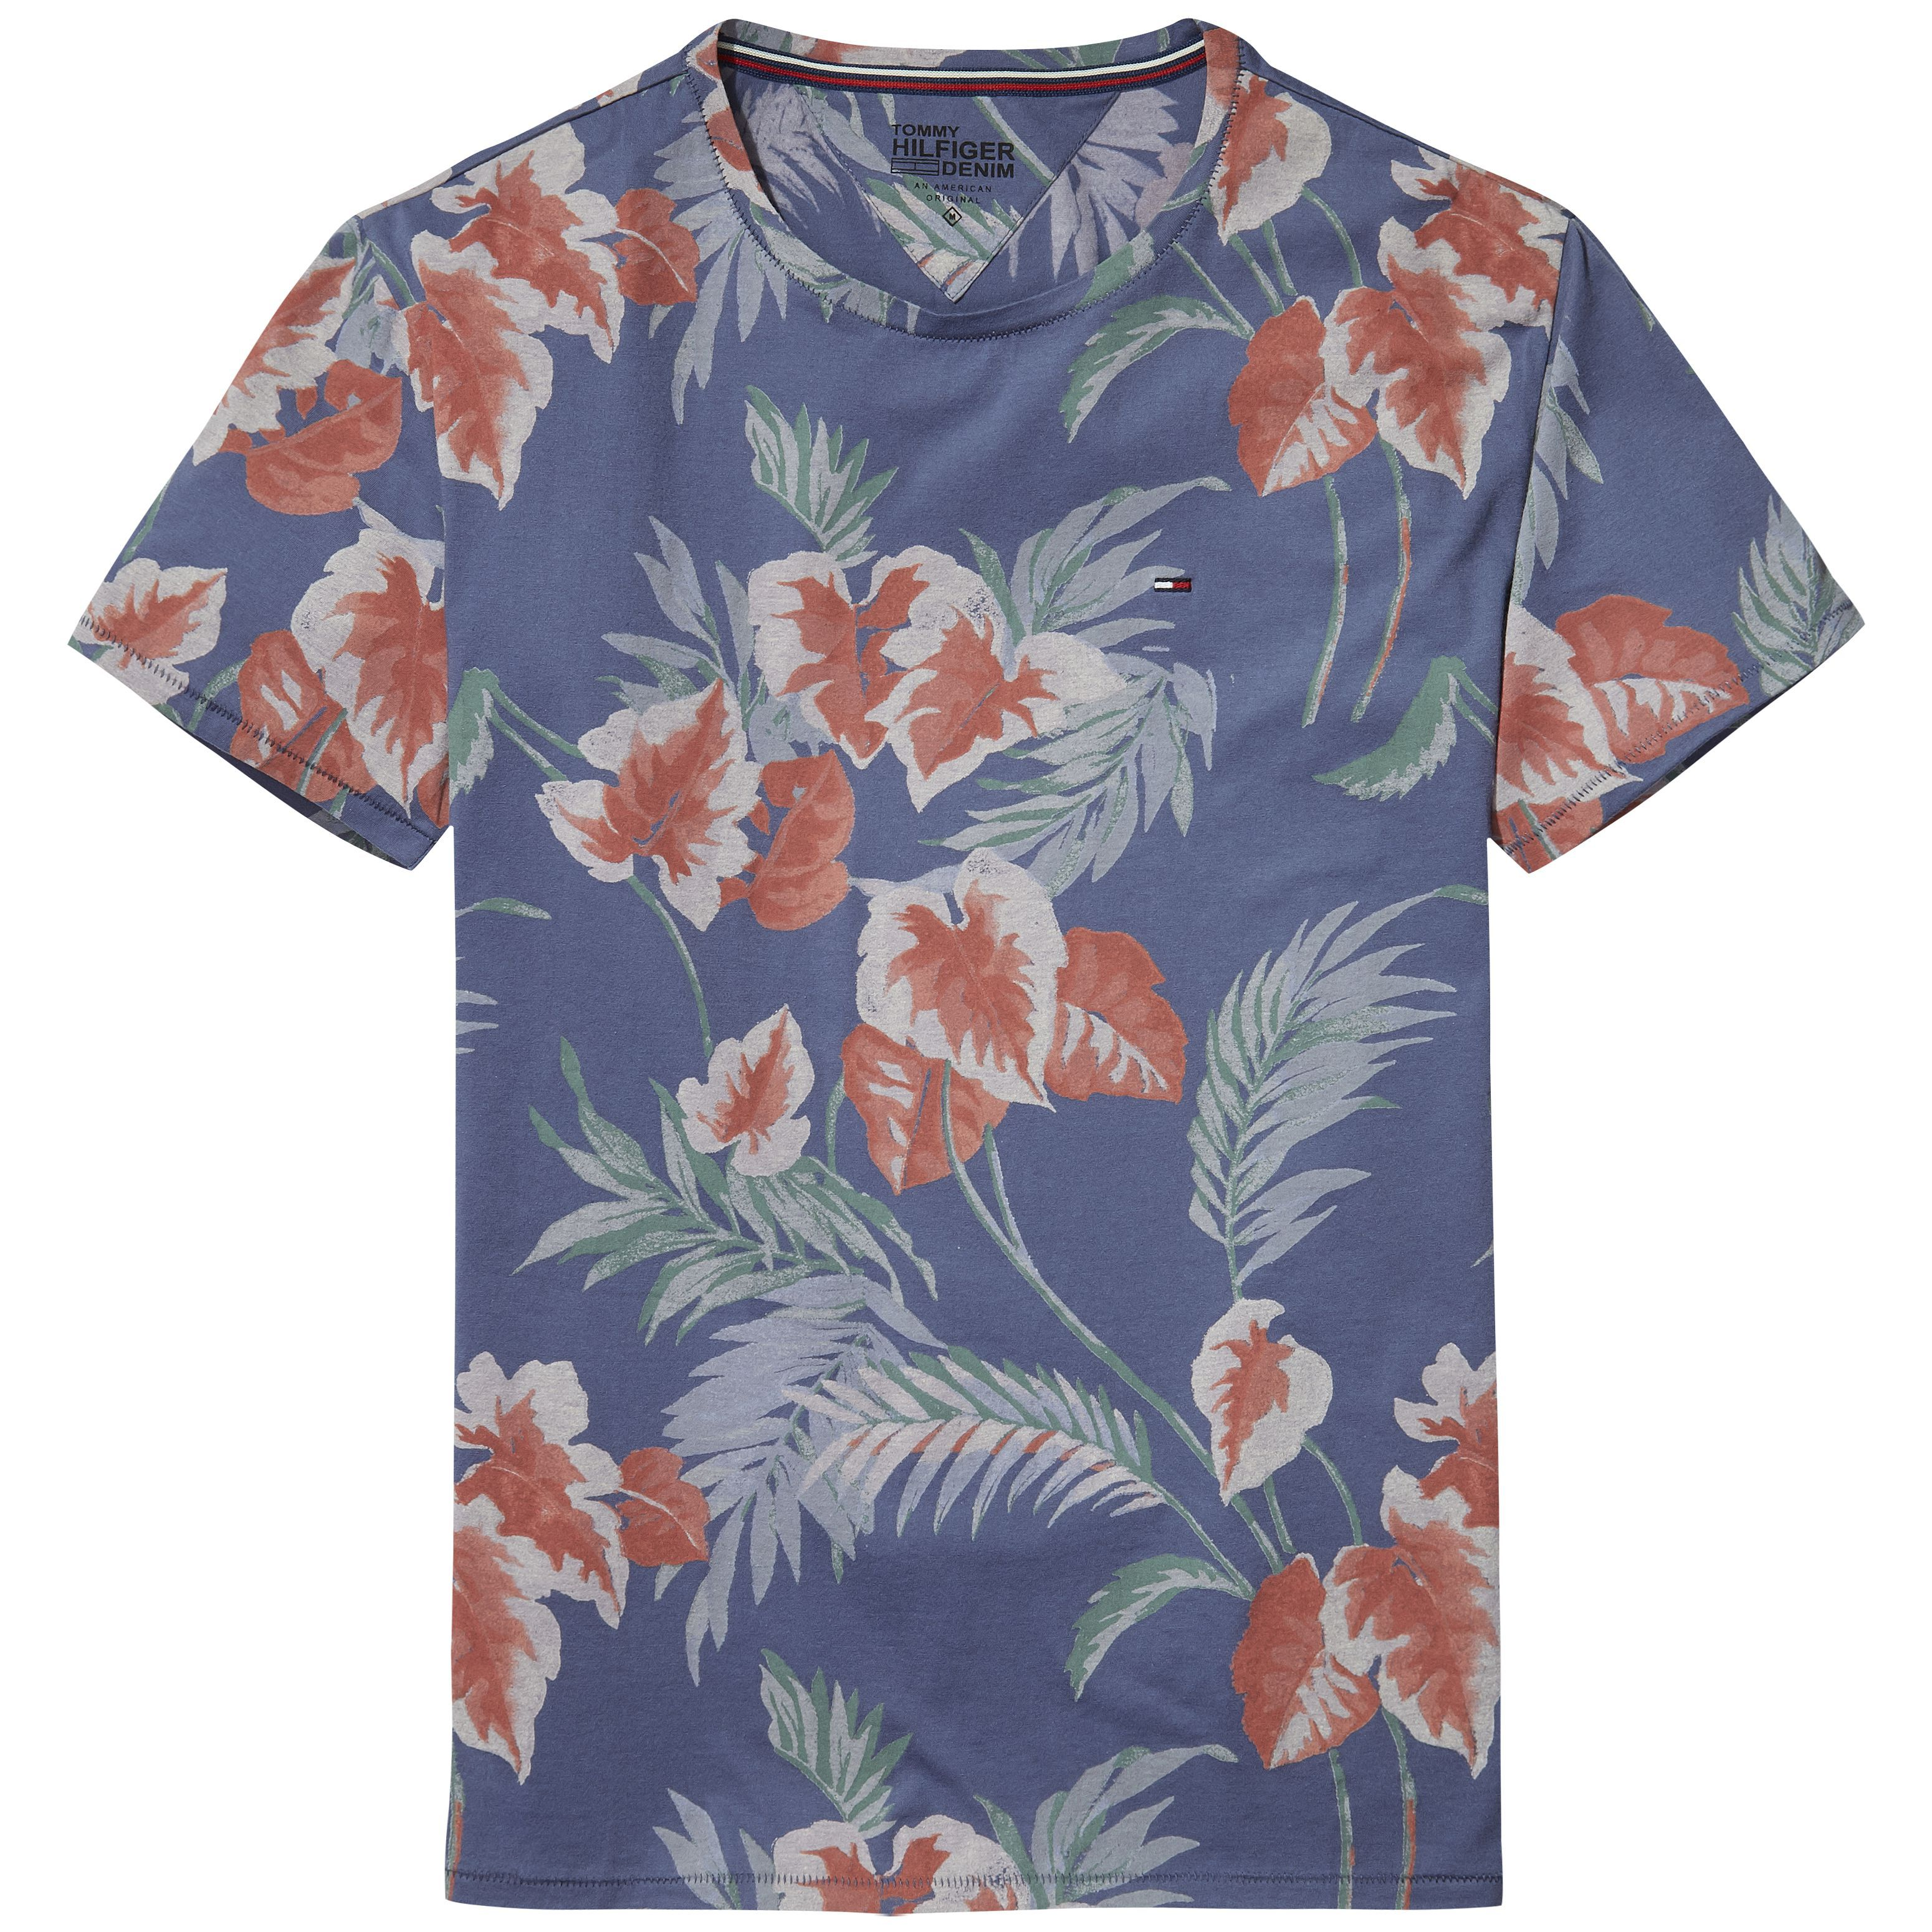 Men's Tommy Hilfiger Hilfiger Denim Floral Print T-Shirt, Blue